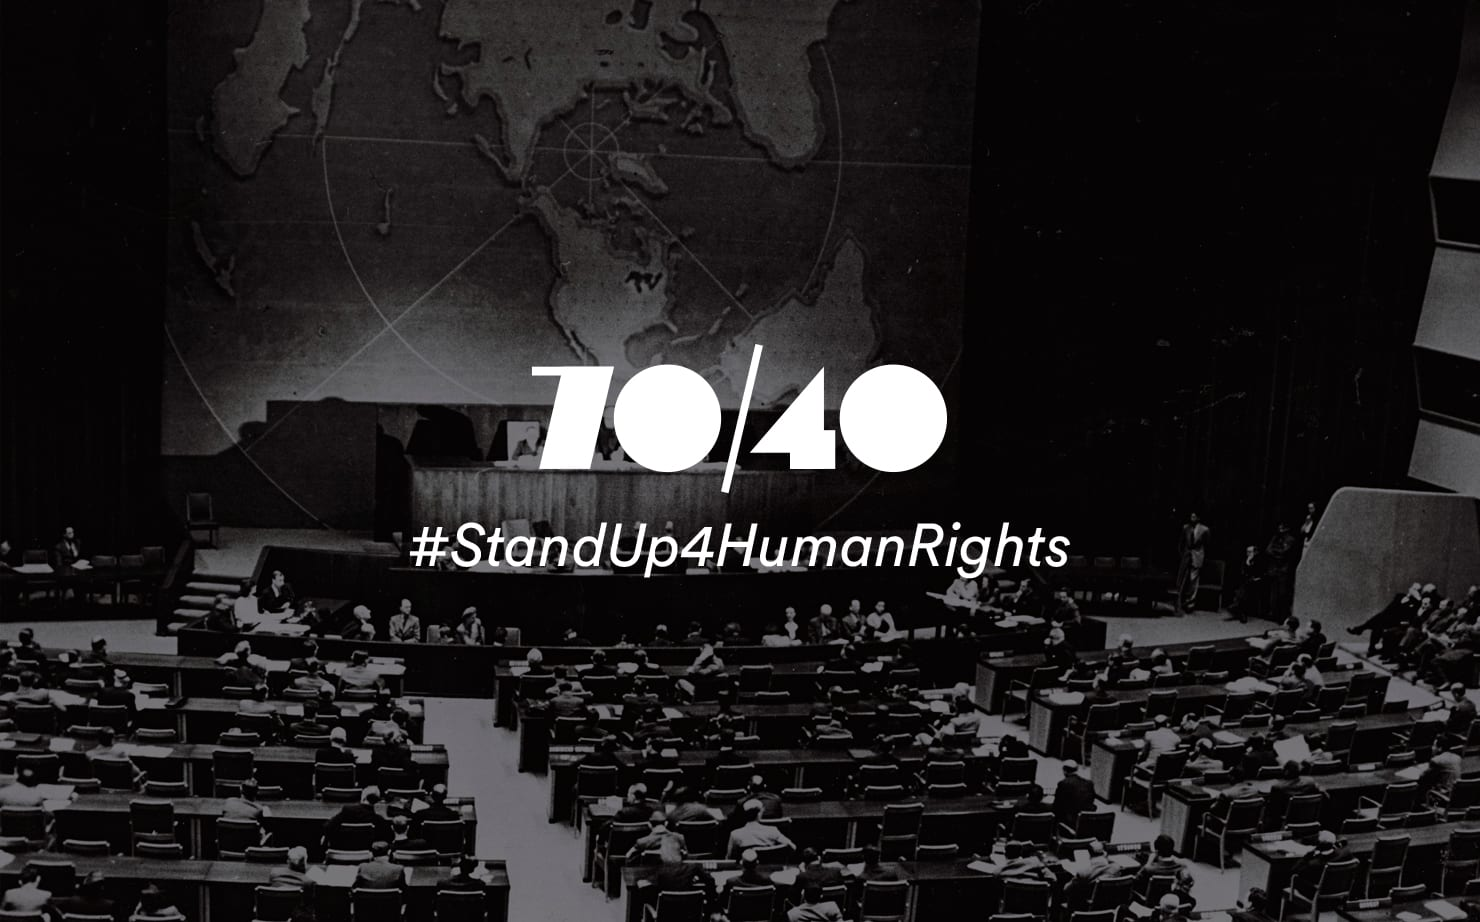 Branding for IDH. #StandUp4HumanRights